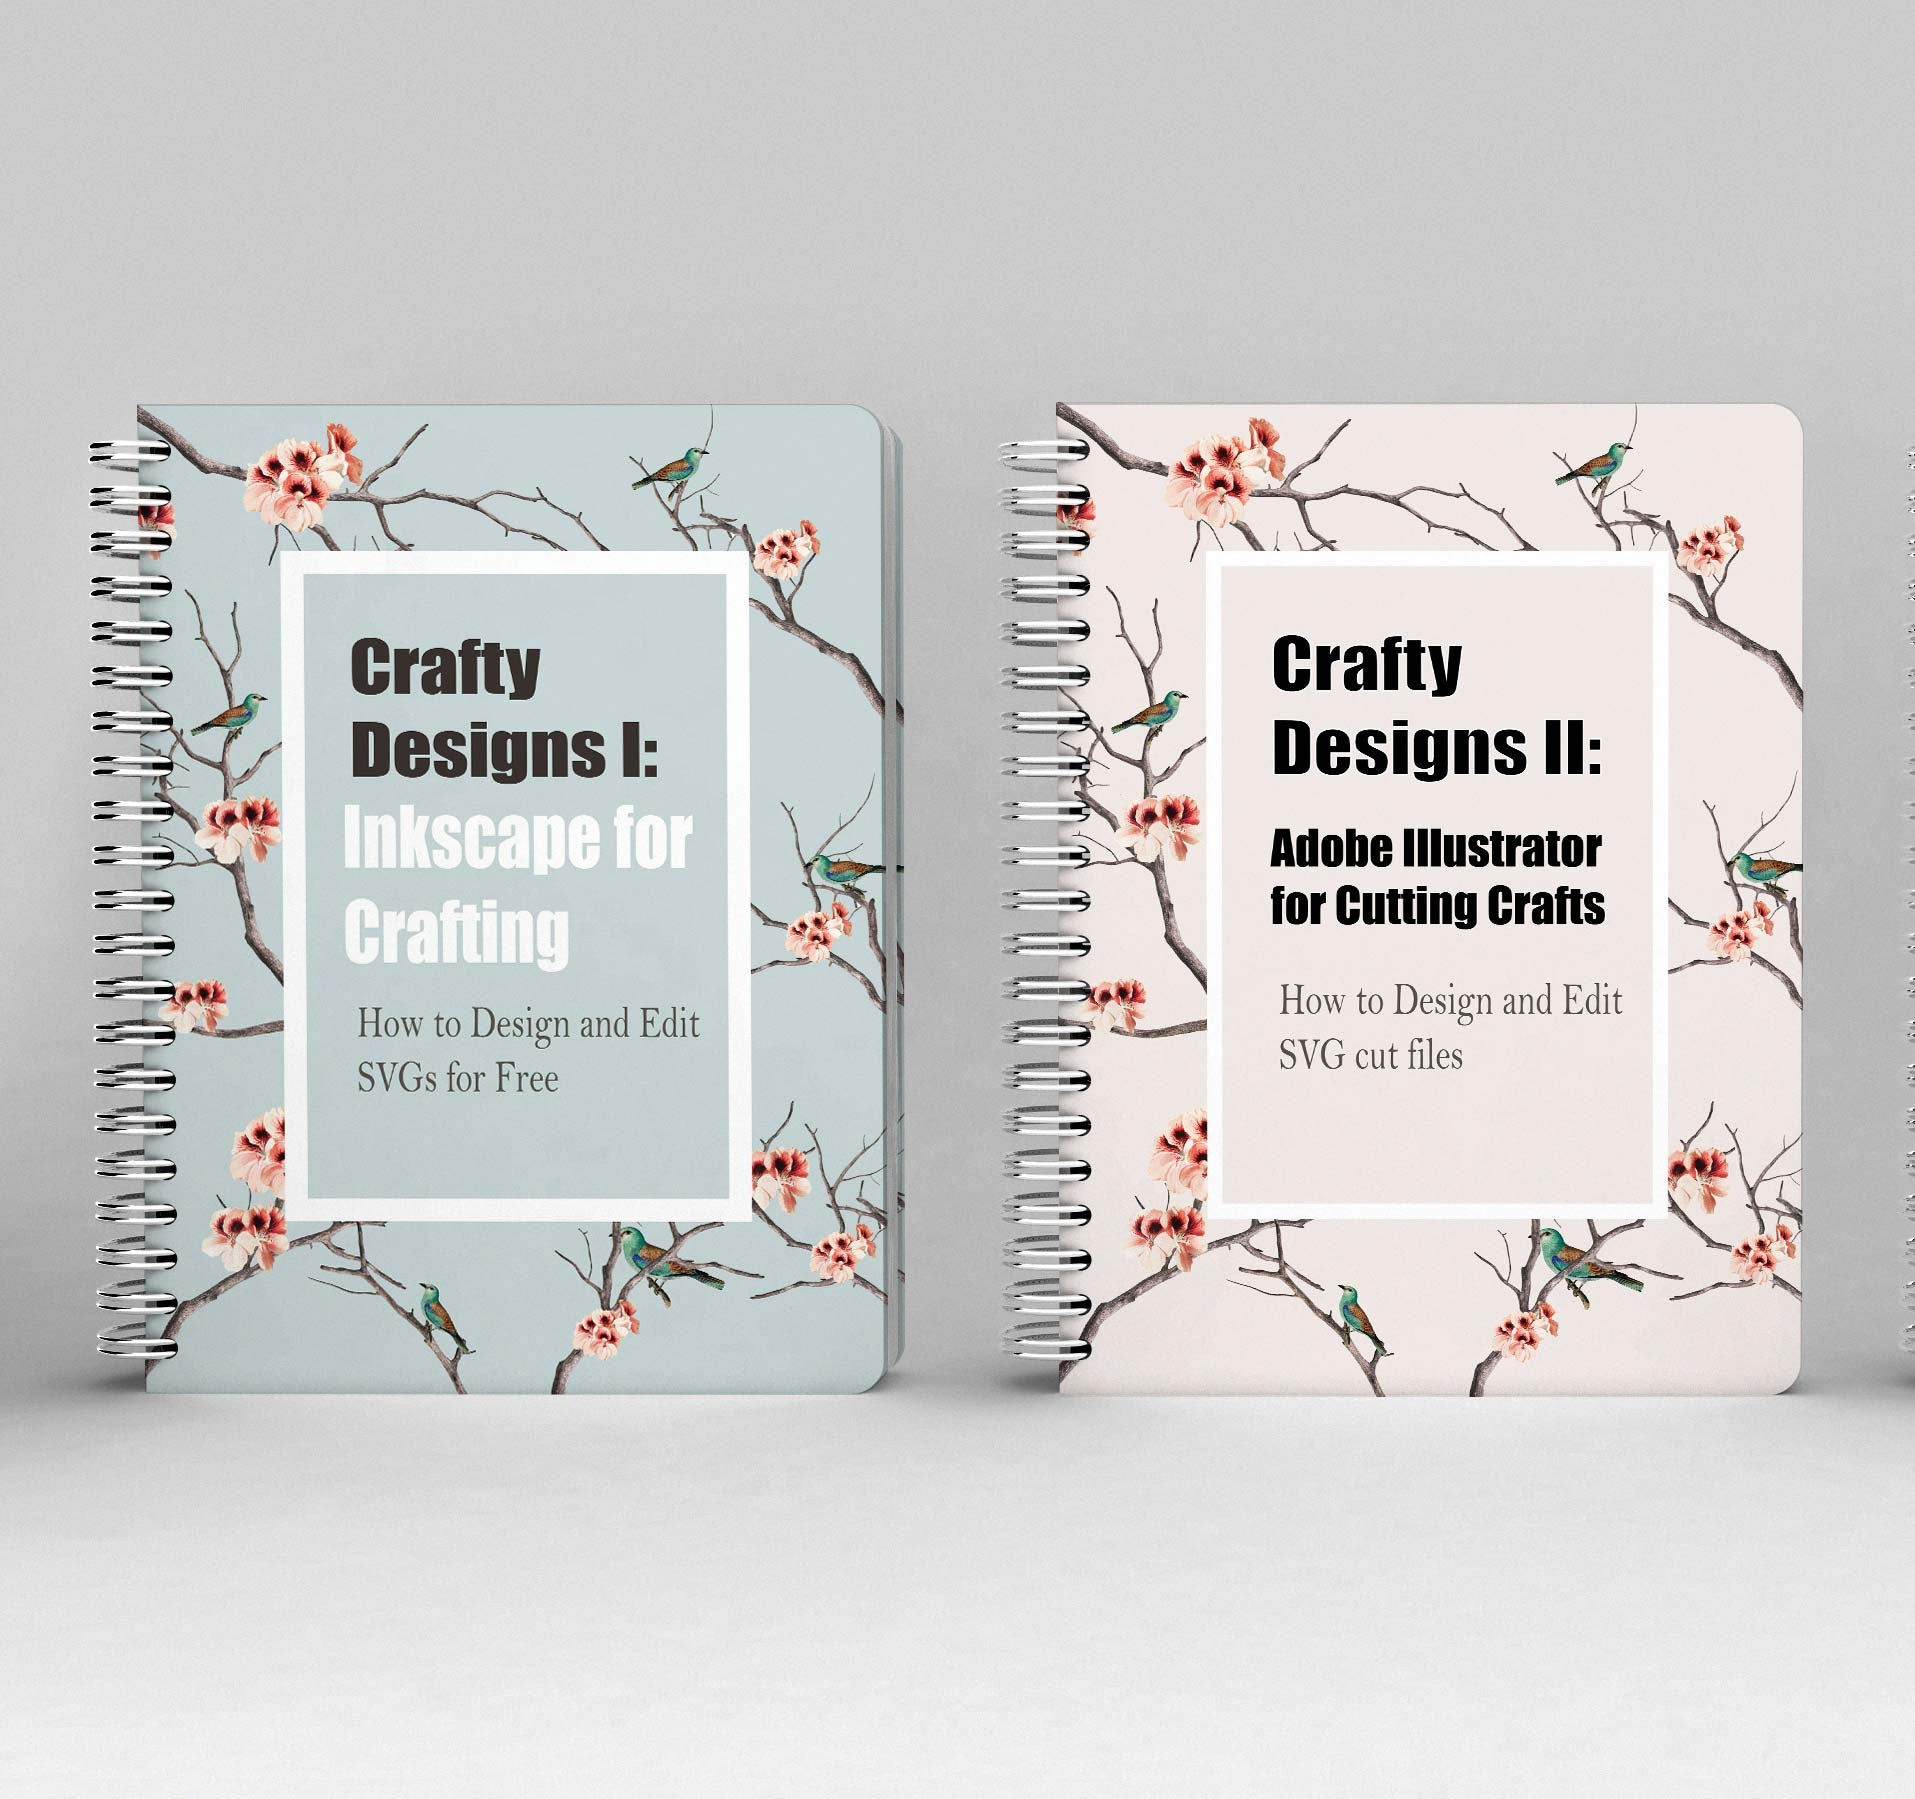 Crafty Designs Bundle: Inkscape and Illustration